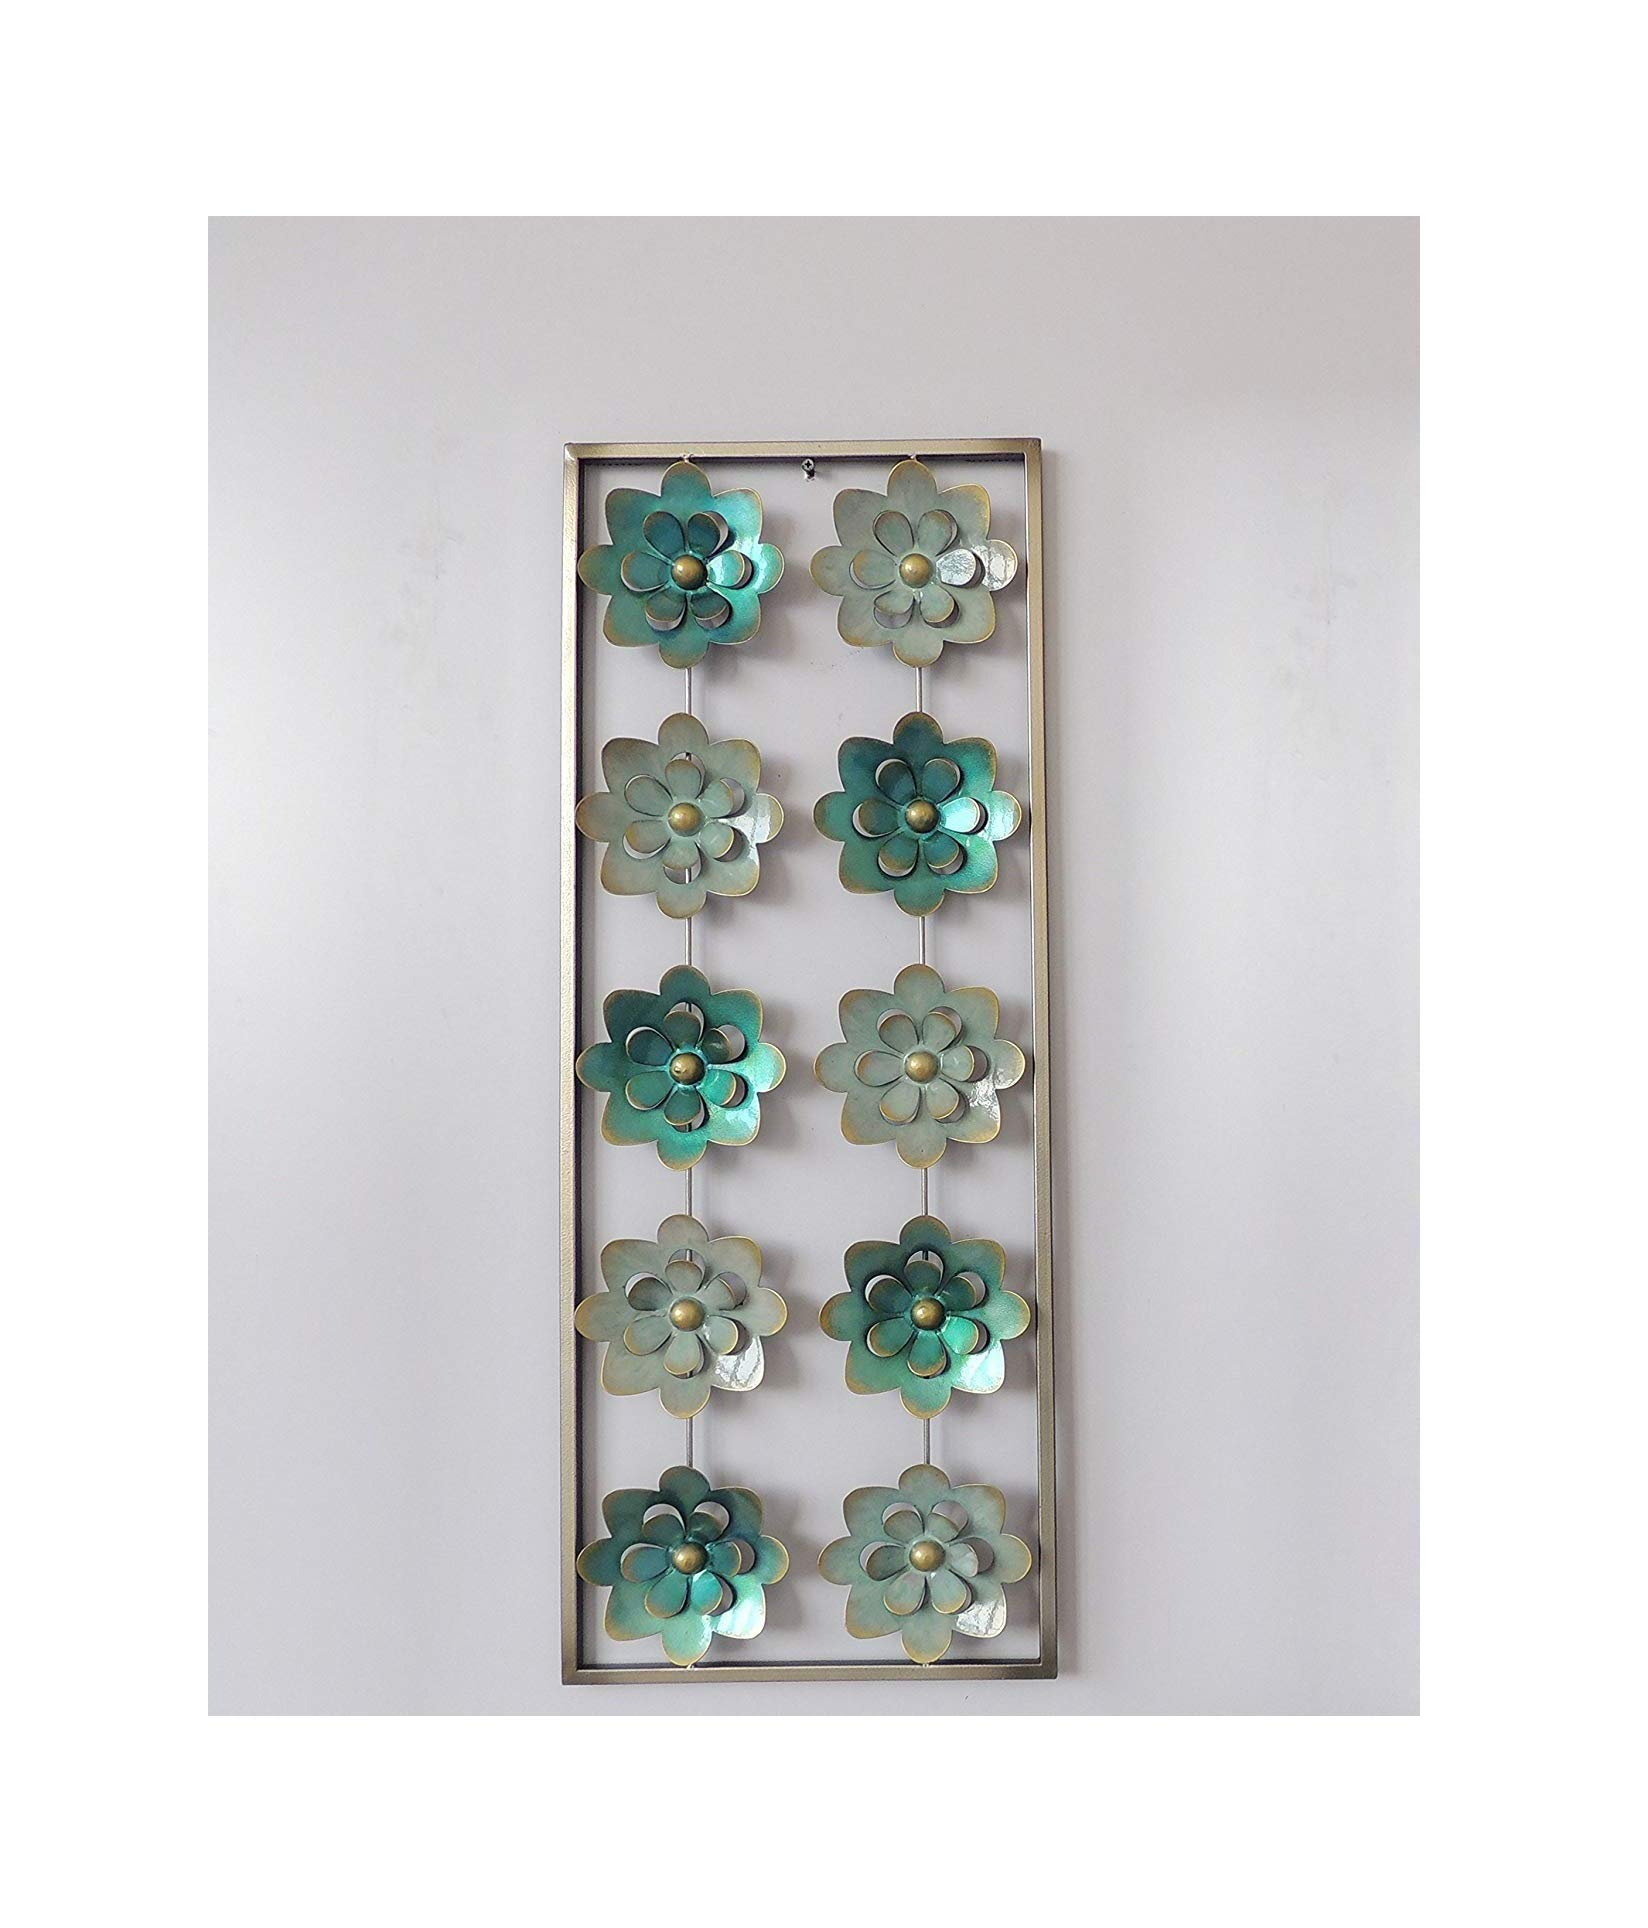 New All American Collection Modern Chic Aluminum/Metal Wall Decor with Frame 12''x30'' (Aqua and Turquoise Flowers)